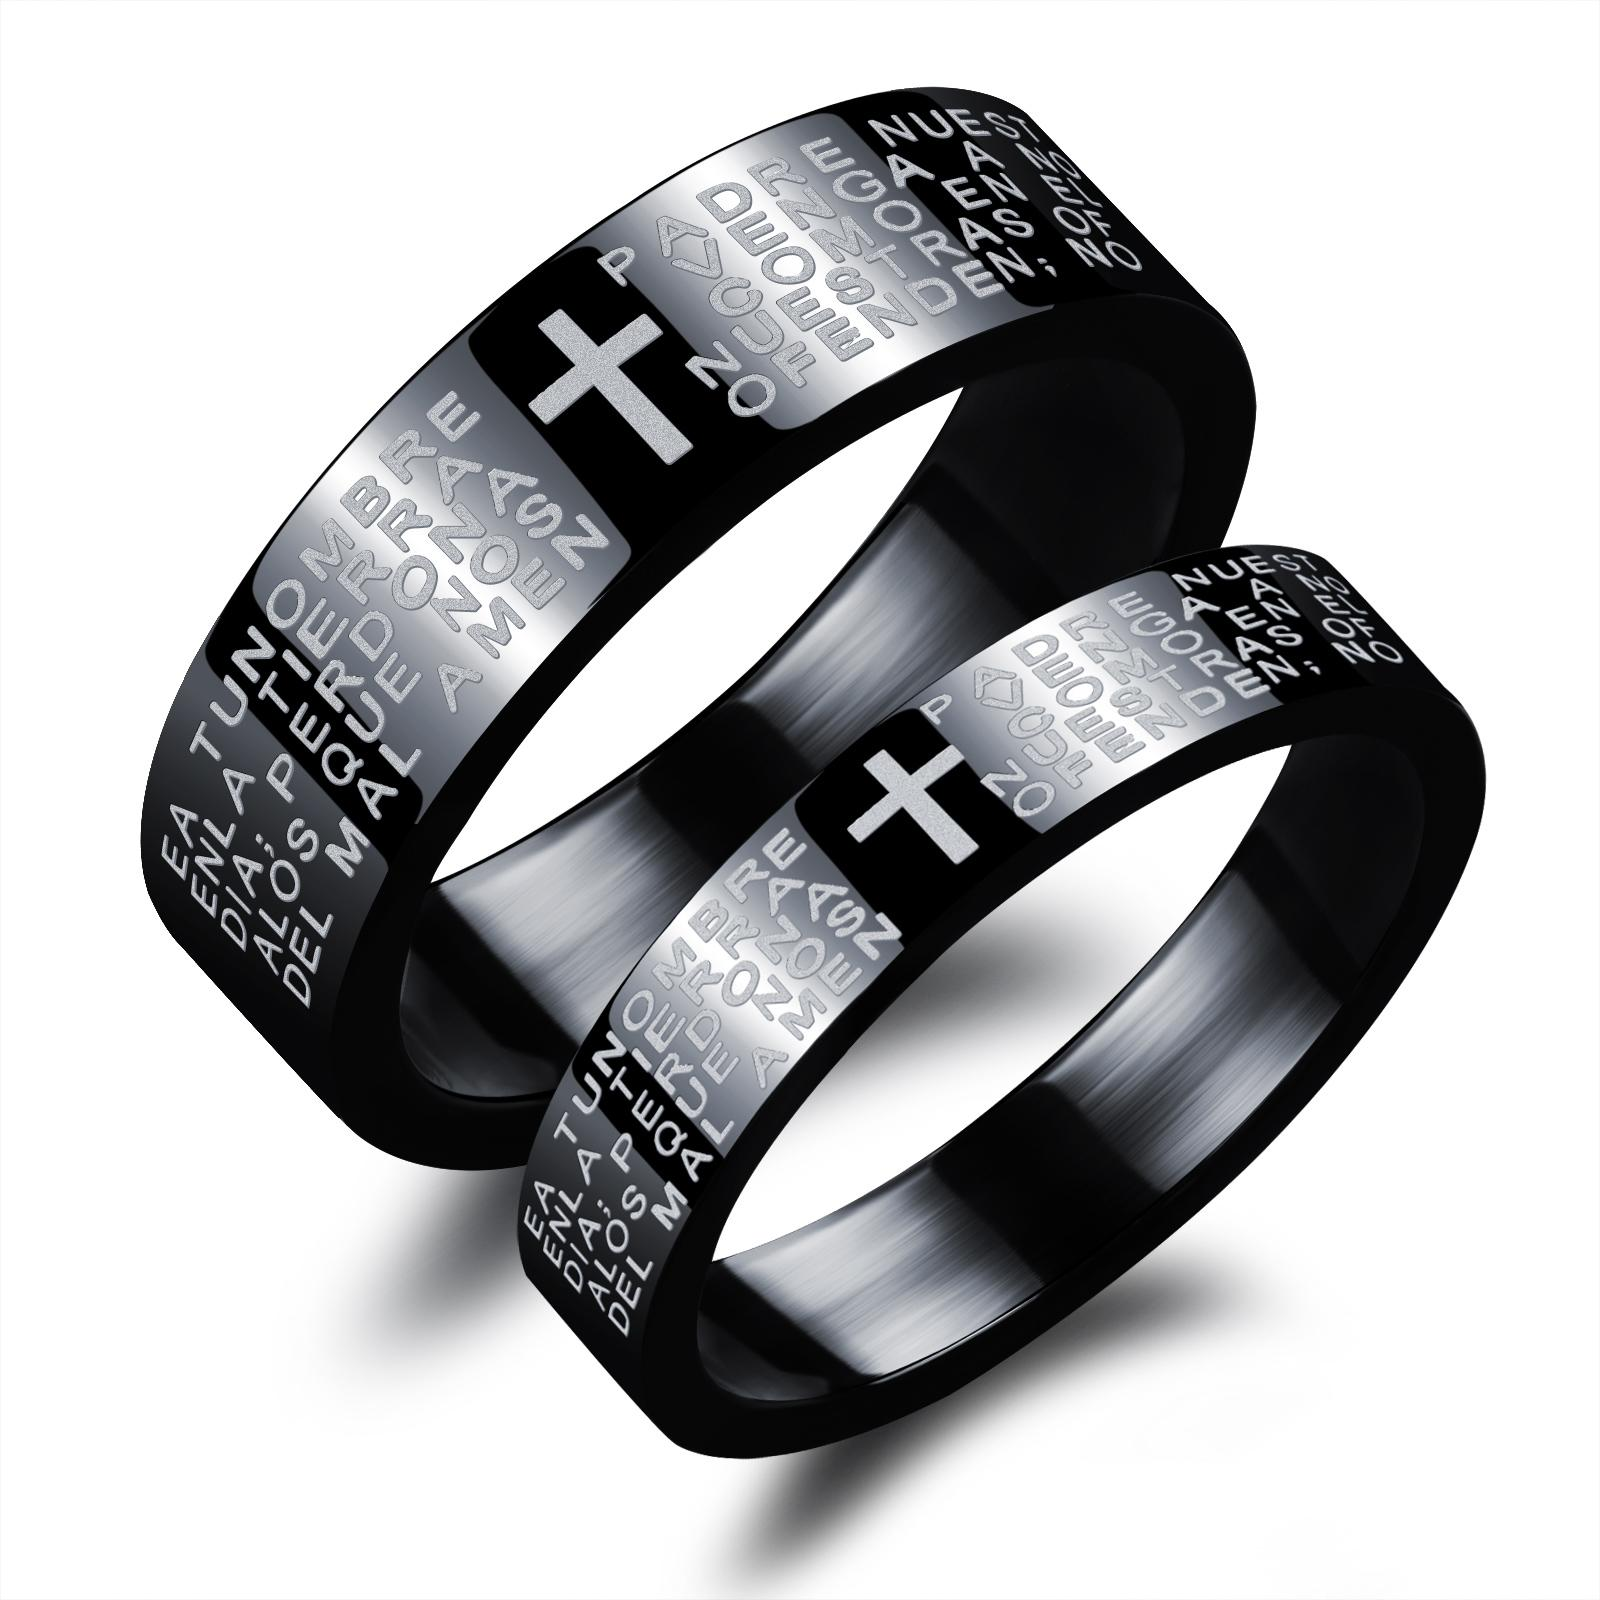 sand pristine wedding mens p s wood ring rings il band black blasted gun iron by metal grey men dessert fullxfull titanium